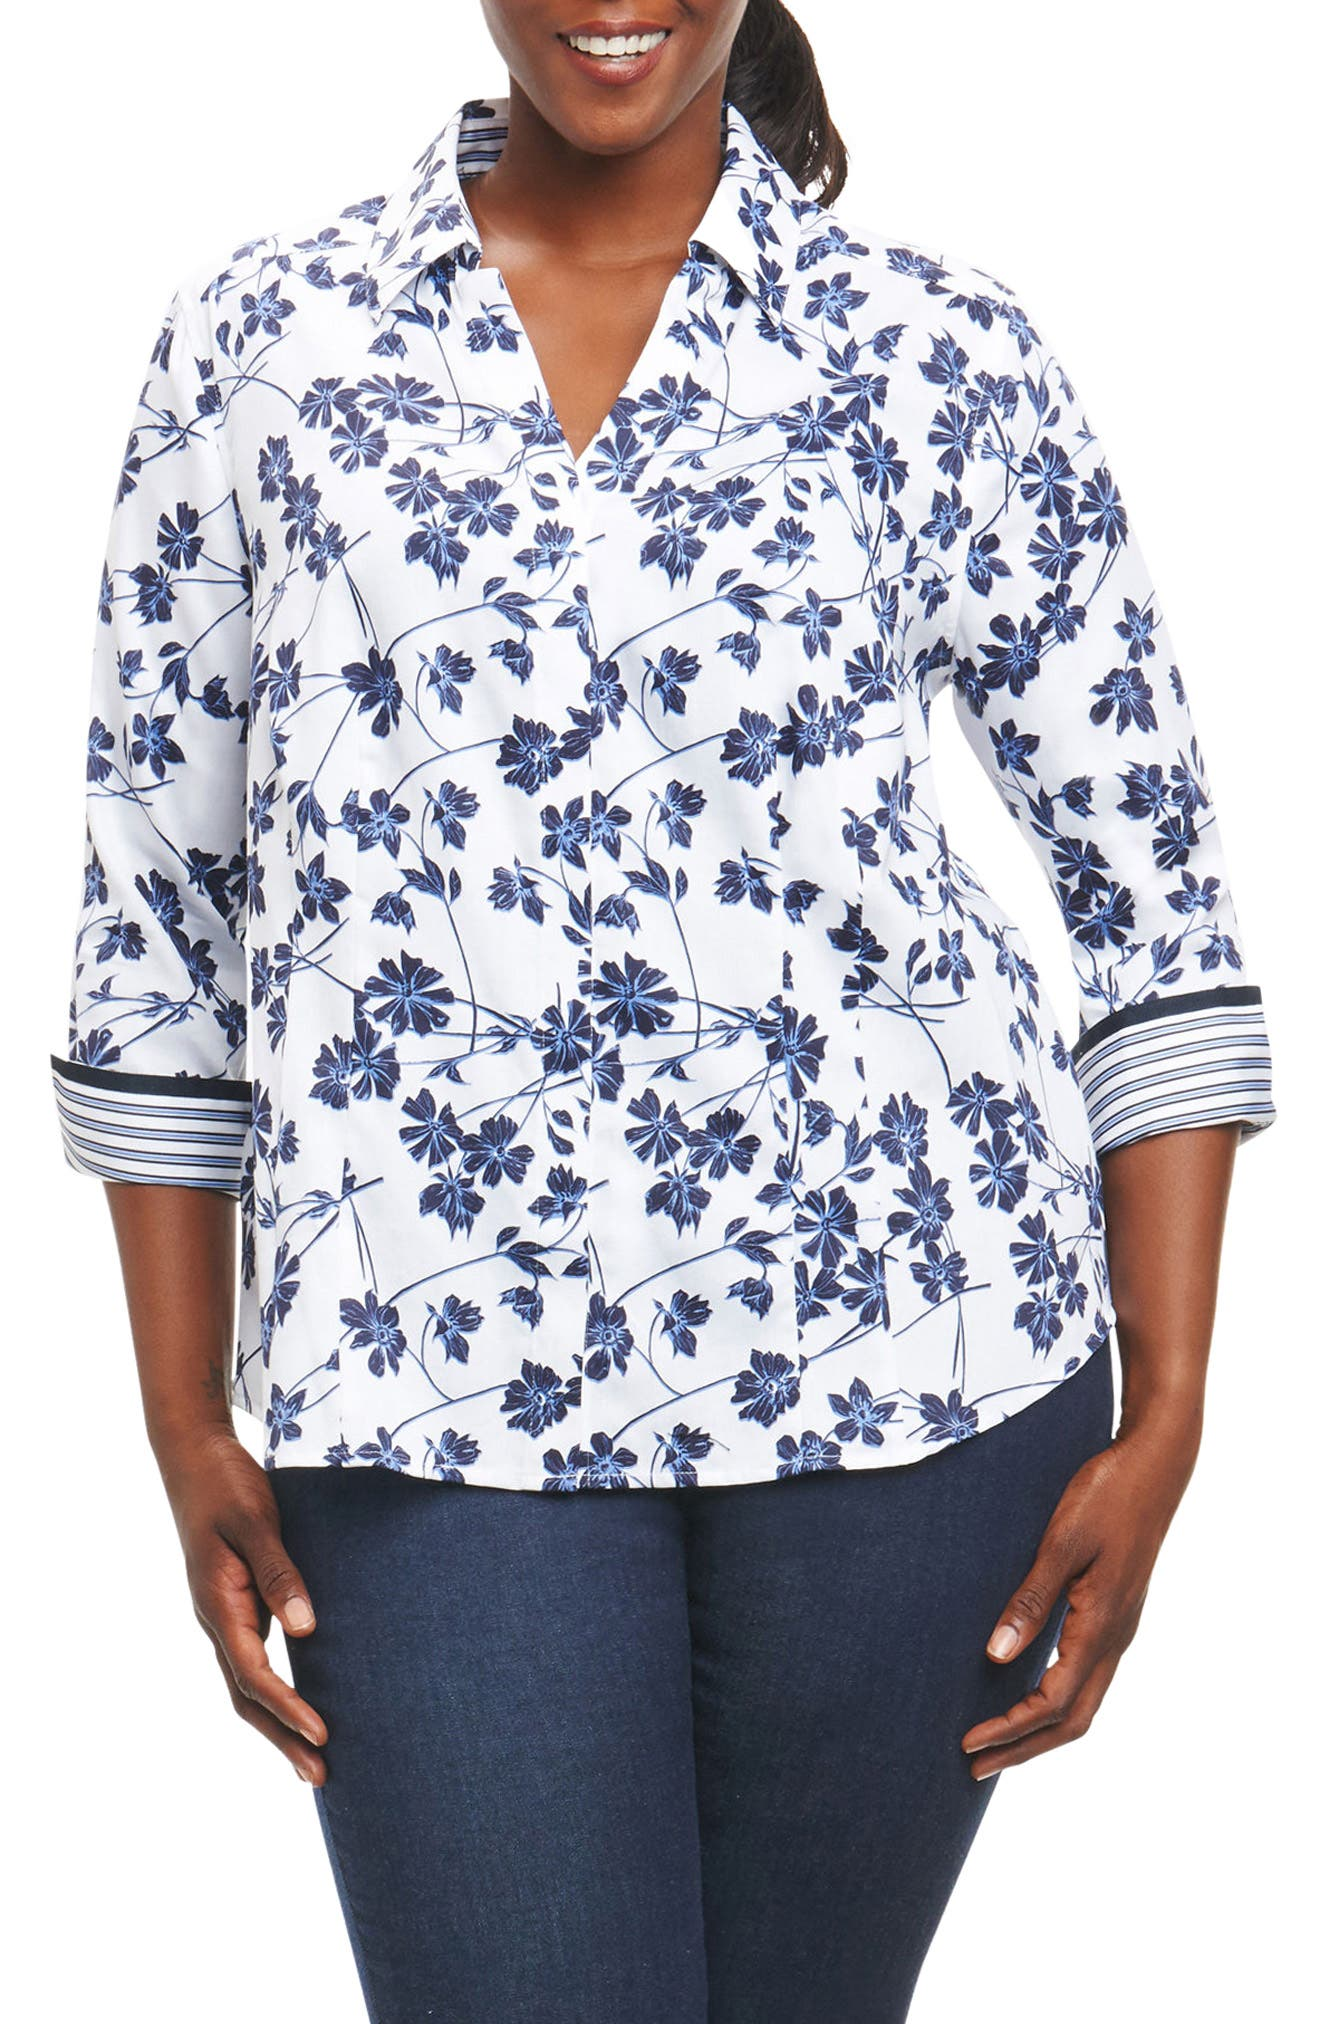 Taylor Floral Print Shirt,                         Main,                         color, White/ Navy